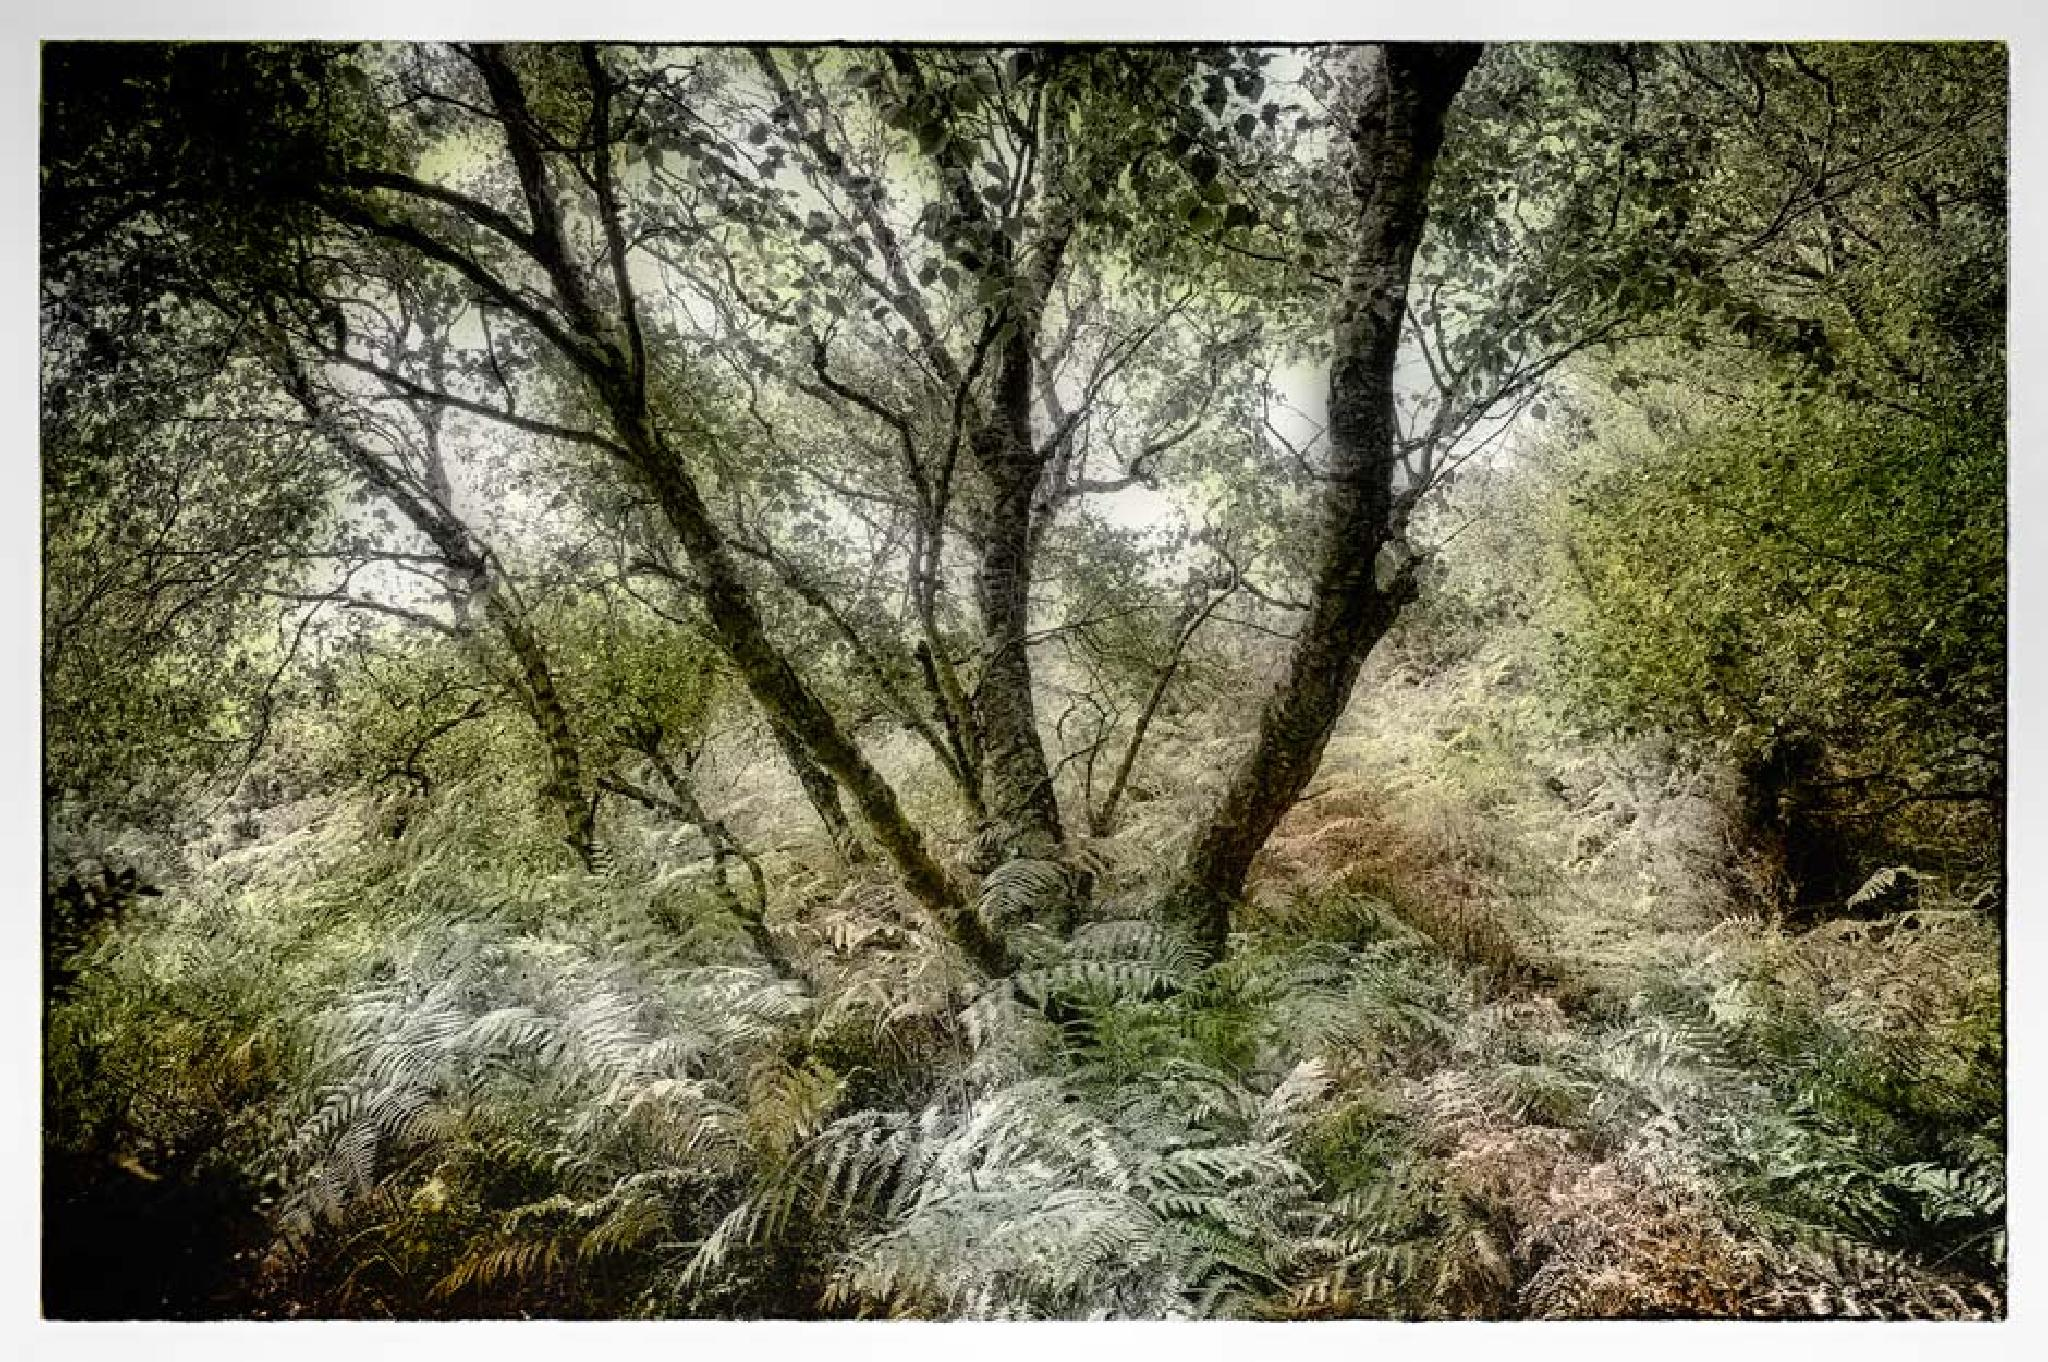 trees and ferns by Juliet Evans Photography